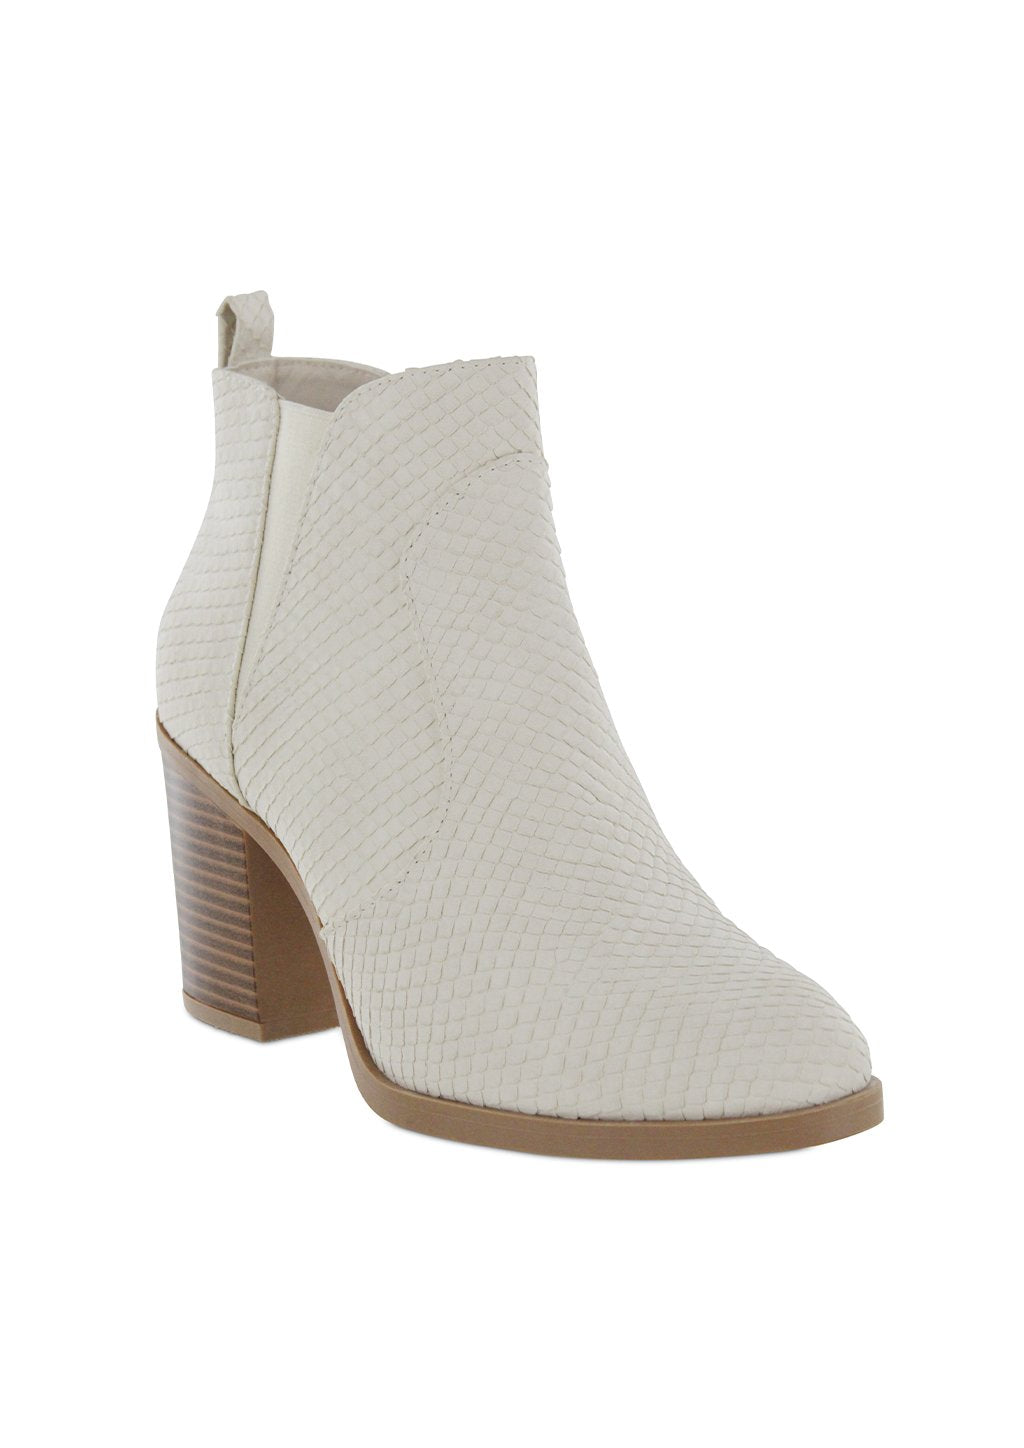 Mia Ivory Snake Booties